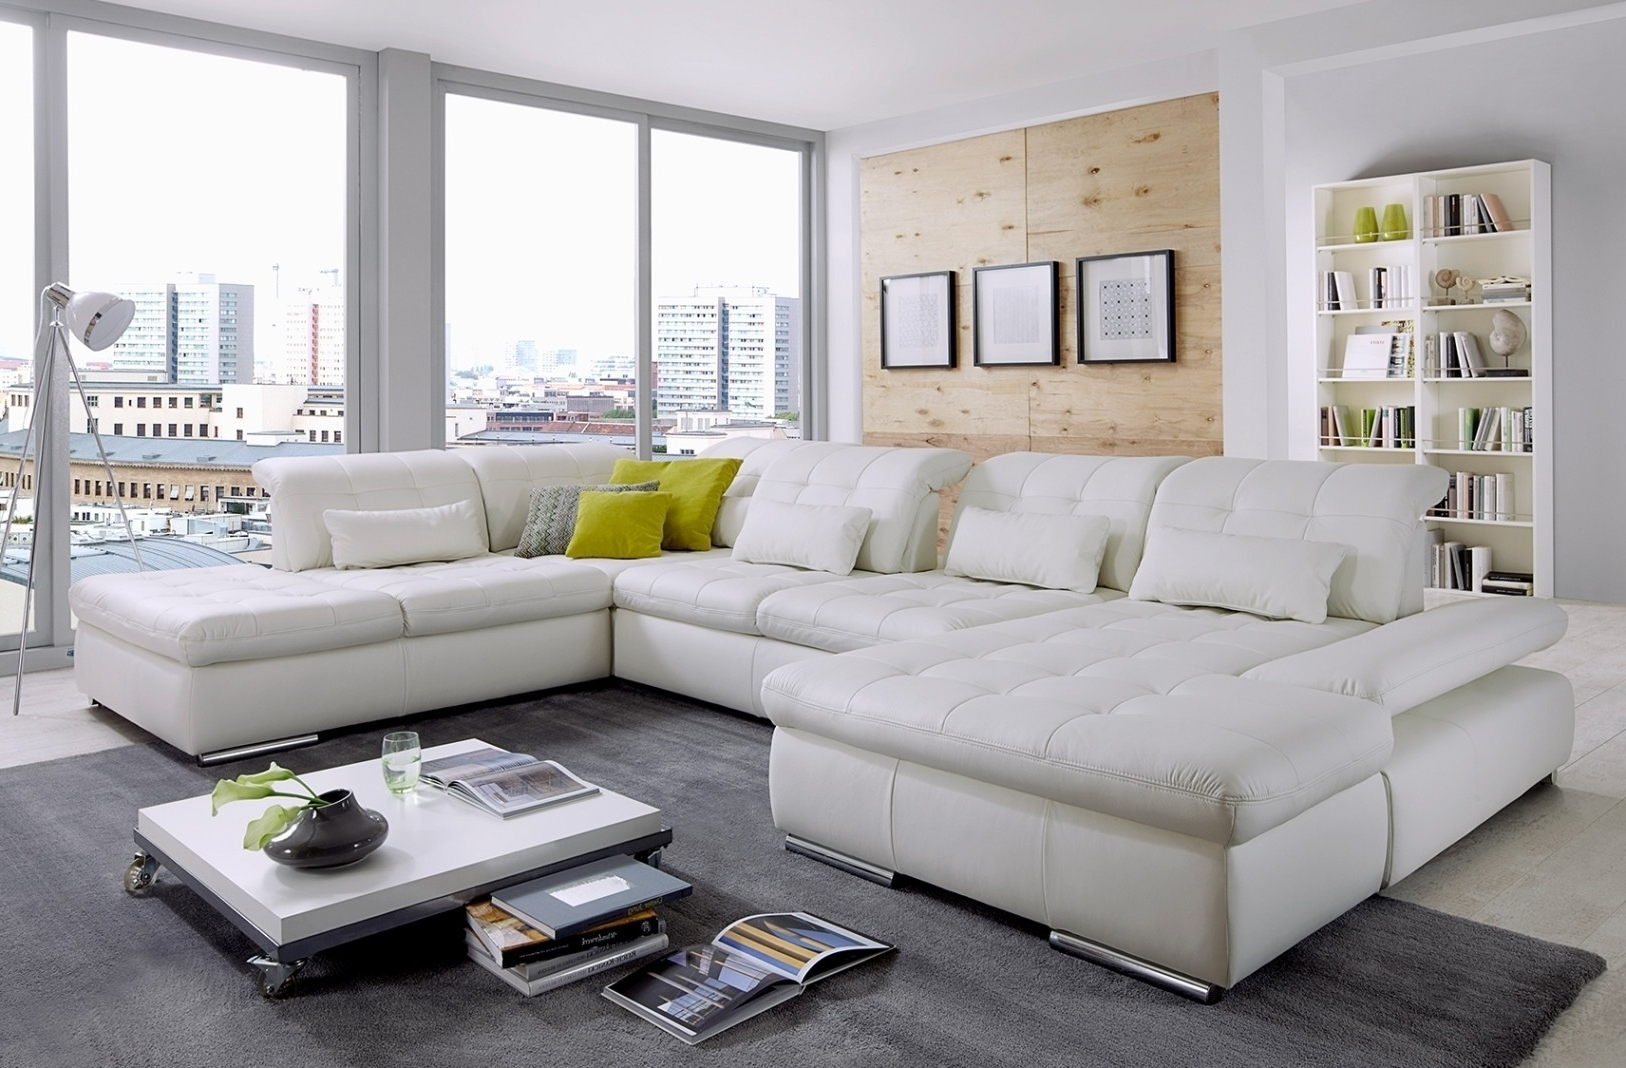 Featured Image of Trinidad And Tobago Sectional Sofas